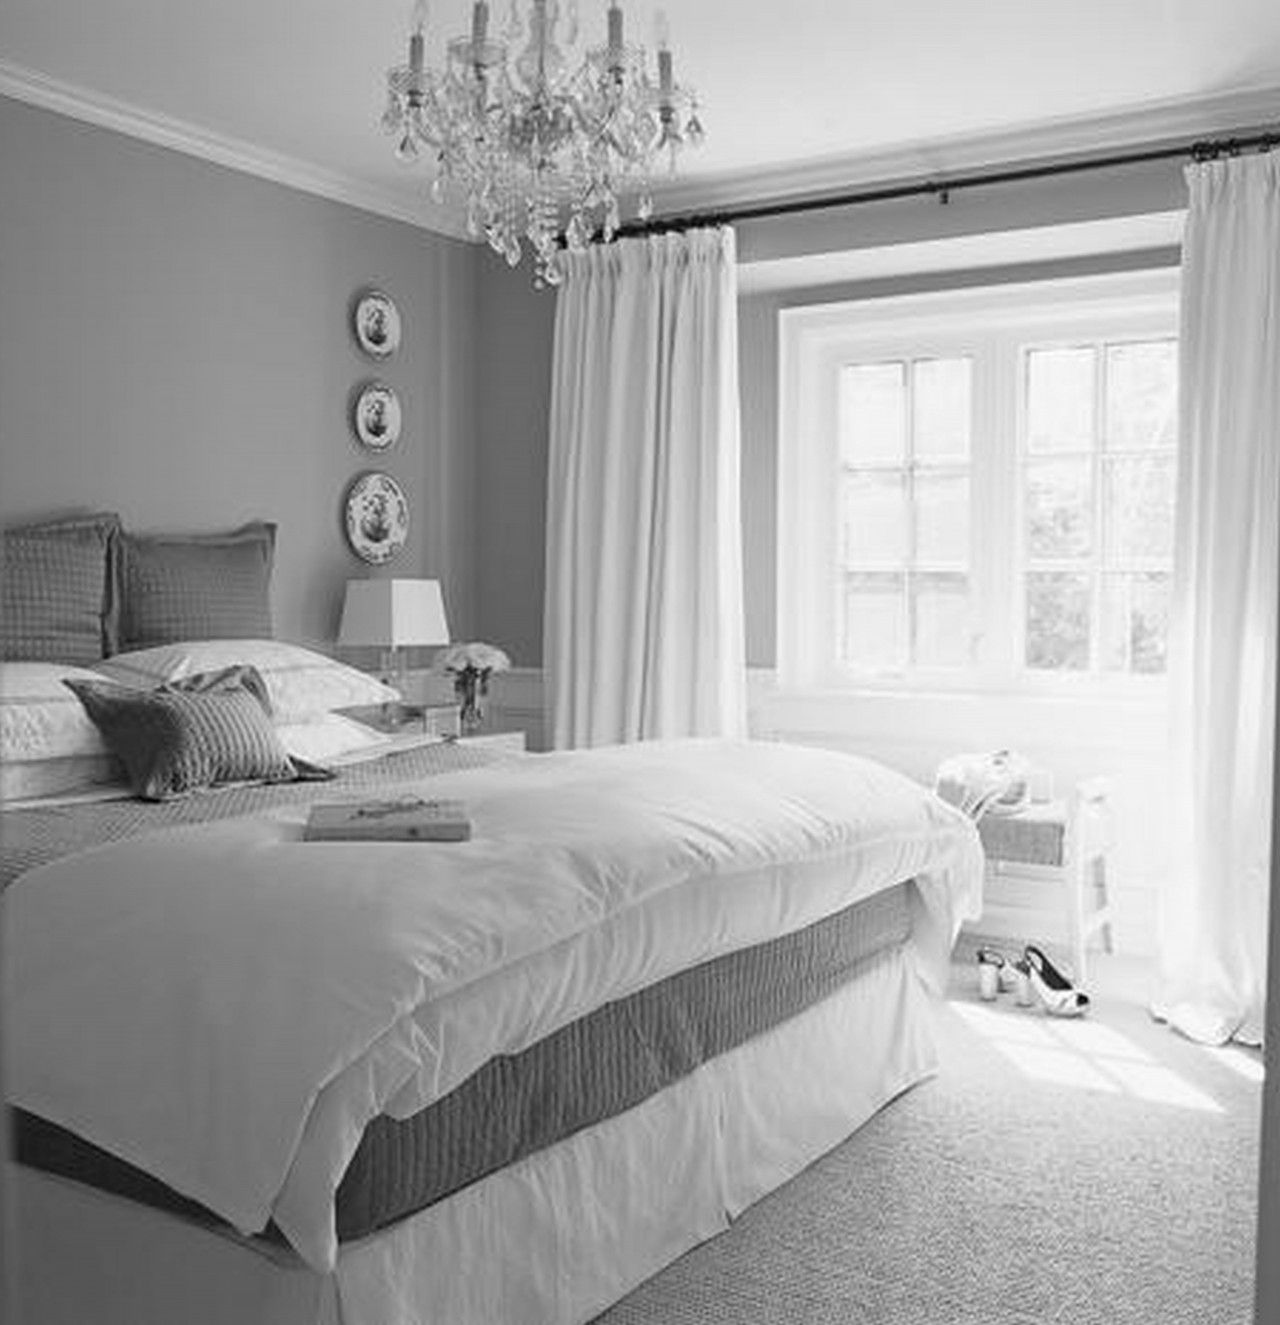 All white bedroom ikea - Breathtaking Small Bedroom Ideas Blueprint Great Ikea Bedroom Furniture Scenic Implements Balance Bedroom Colors Greysecret